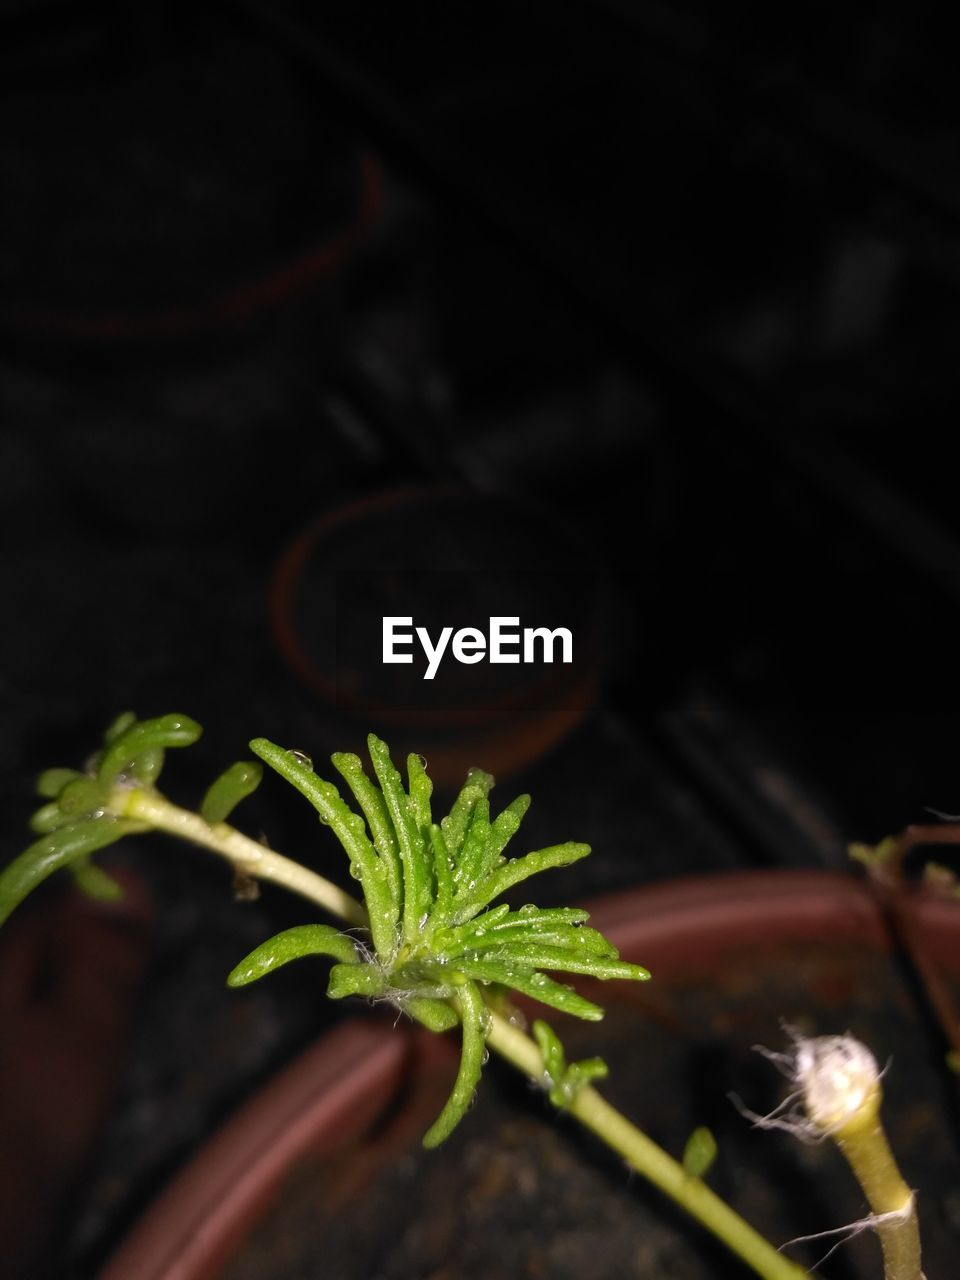 plant, growth, green color, plant part, leaf, close-up, selective focus, beauty in nature, nature, no people, freshness, outdoors, potted plant, night, focus on foreground, high angle view, beginnings, food, herb